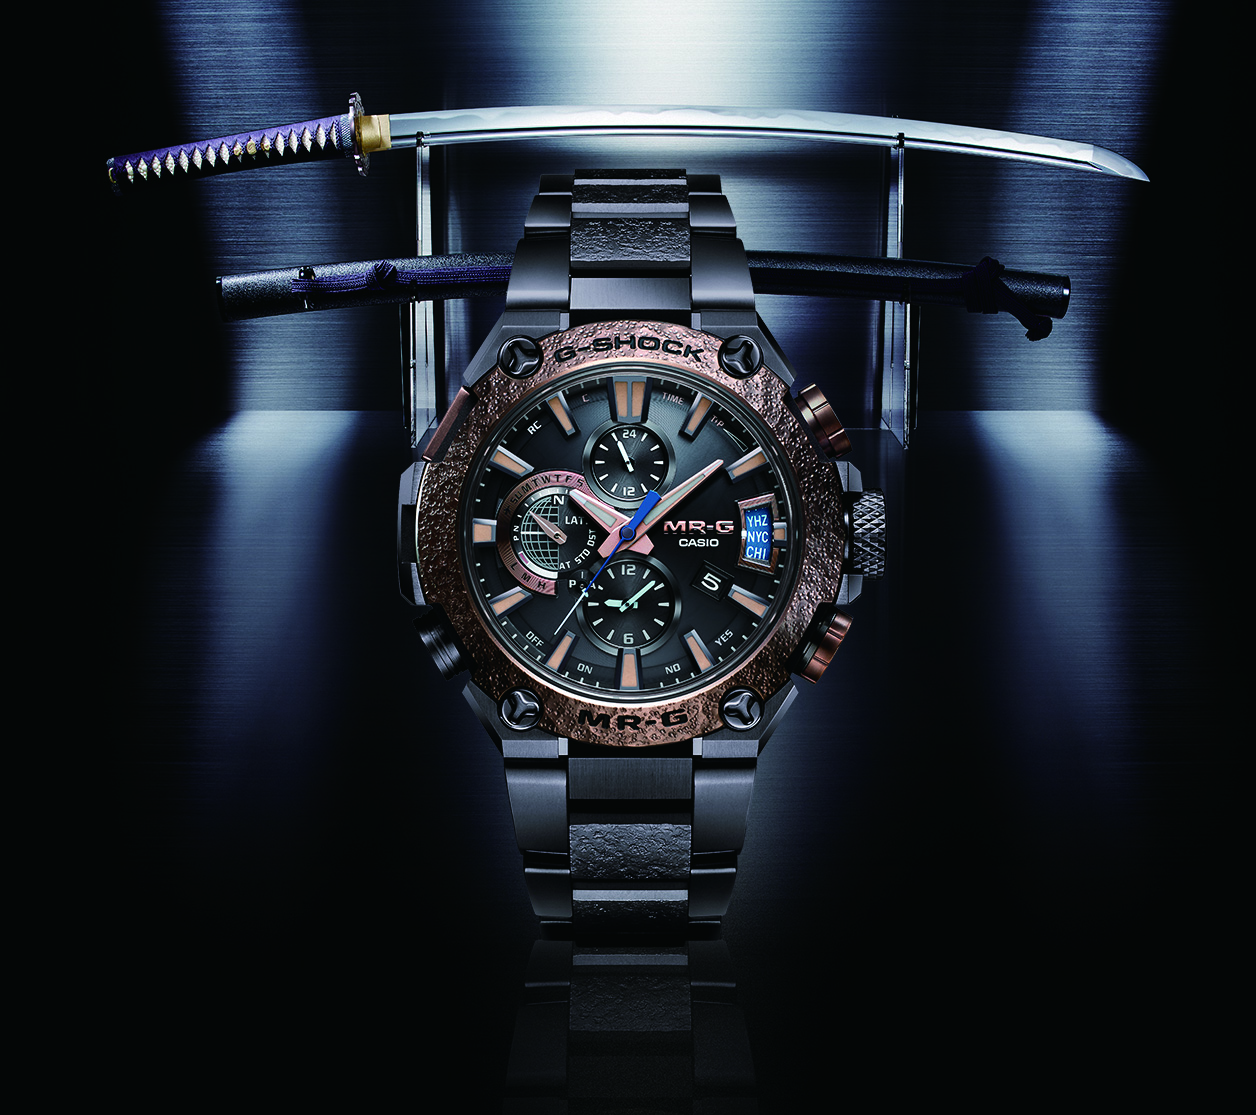 [Official] G-Shock MRG-G2000HA — Special Edition Connected MR-G at Baselworld